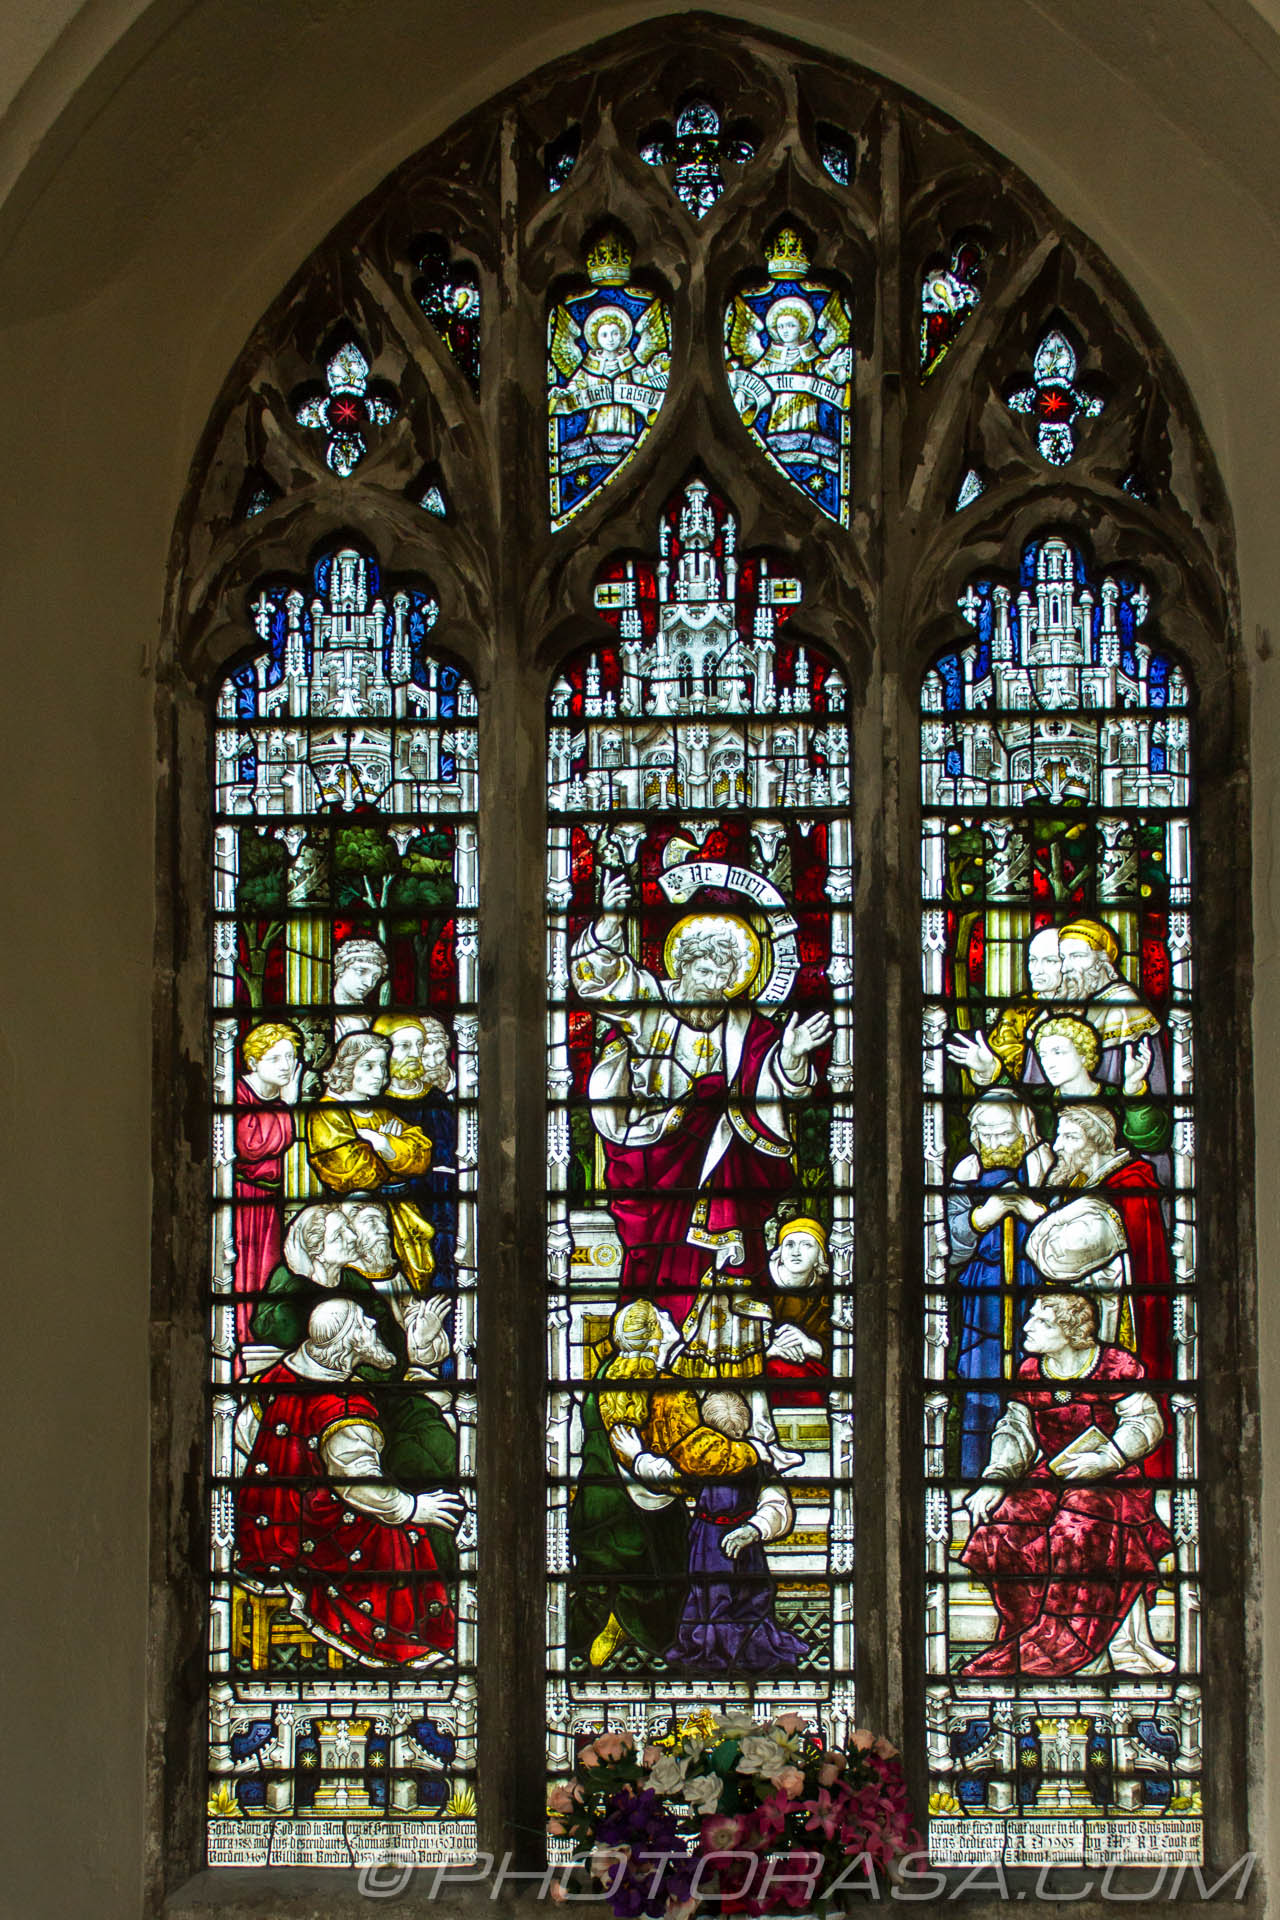 http://photorasa.com/parish-church-st-peter-st-paul-headcorn/first-north-side-stained-glass-window/